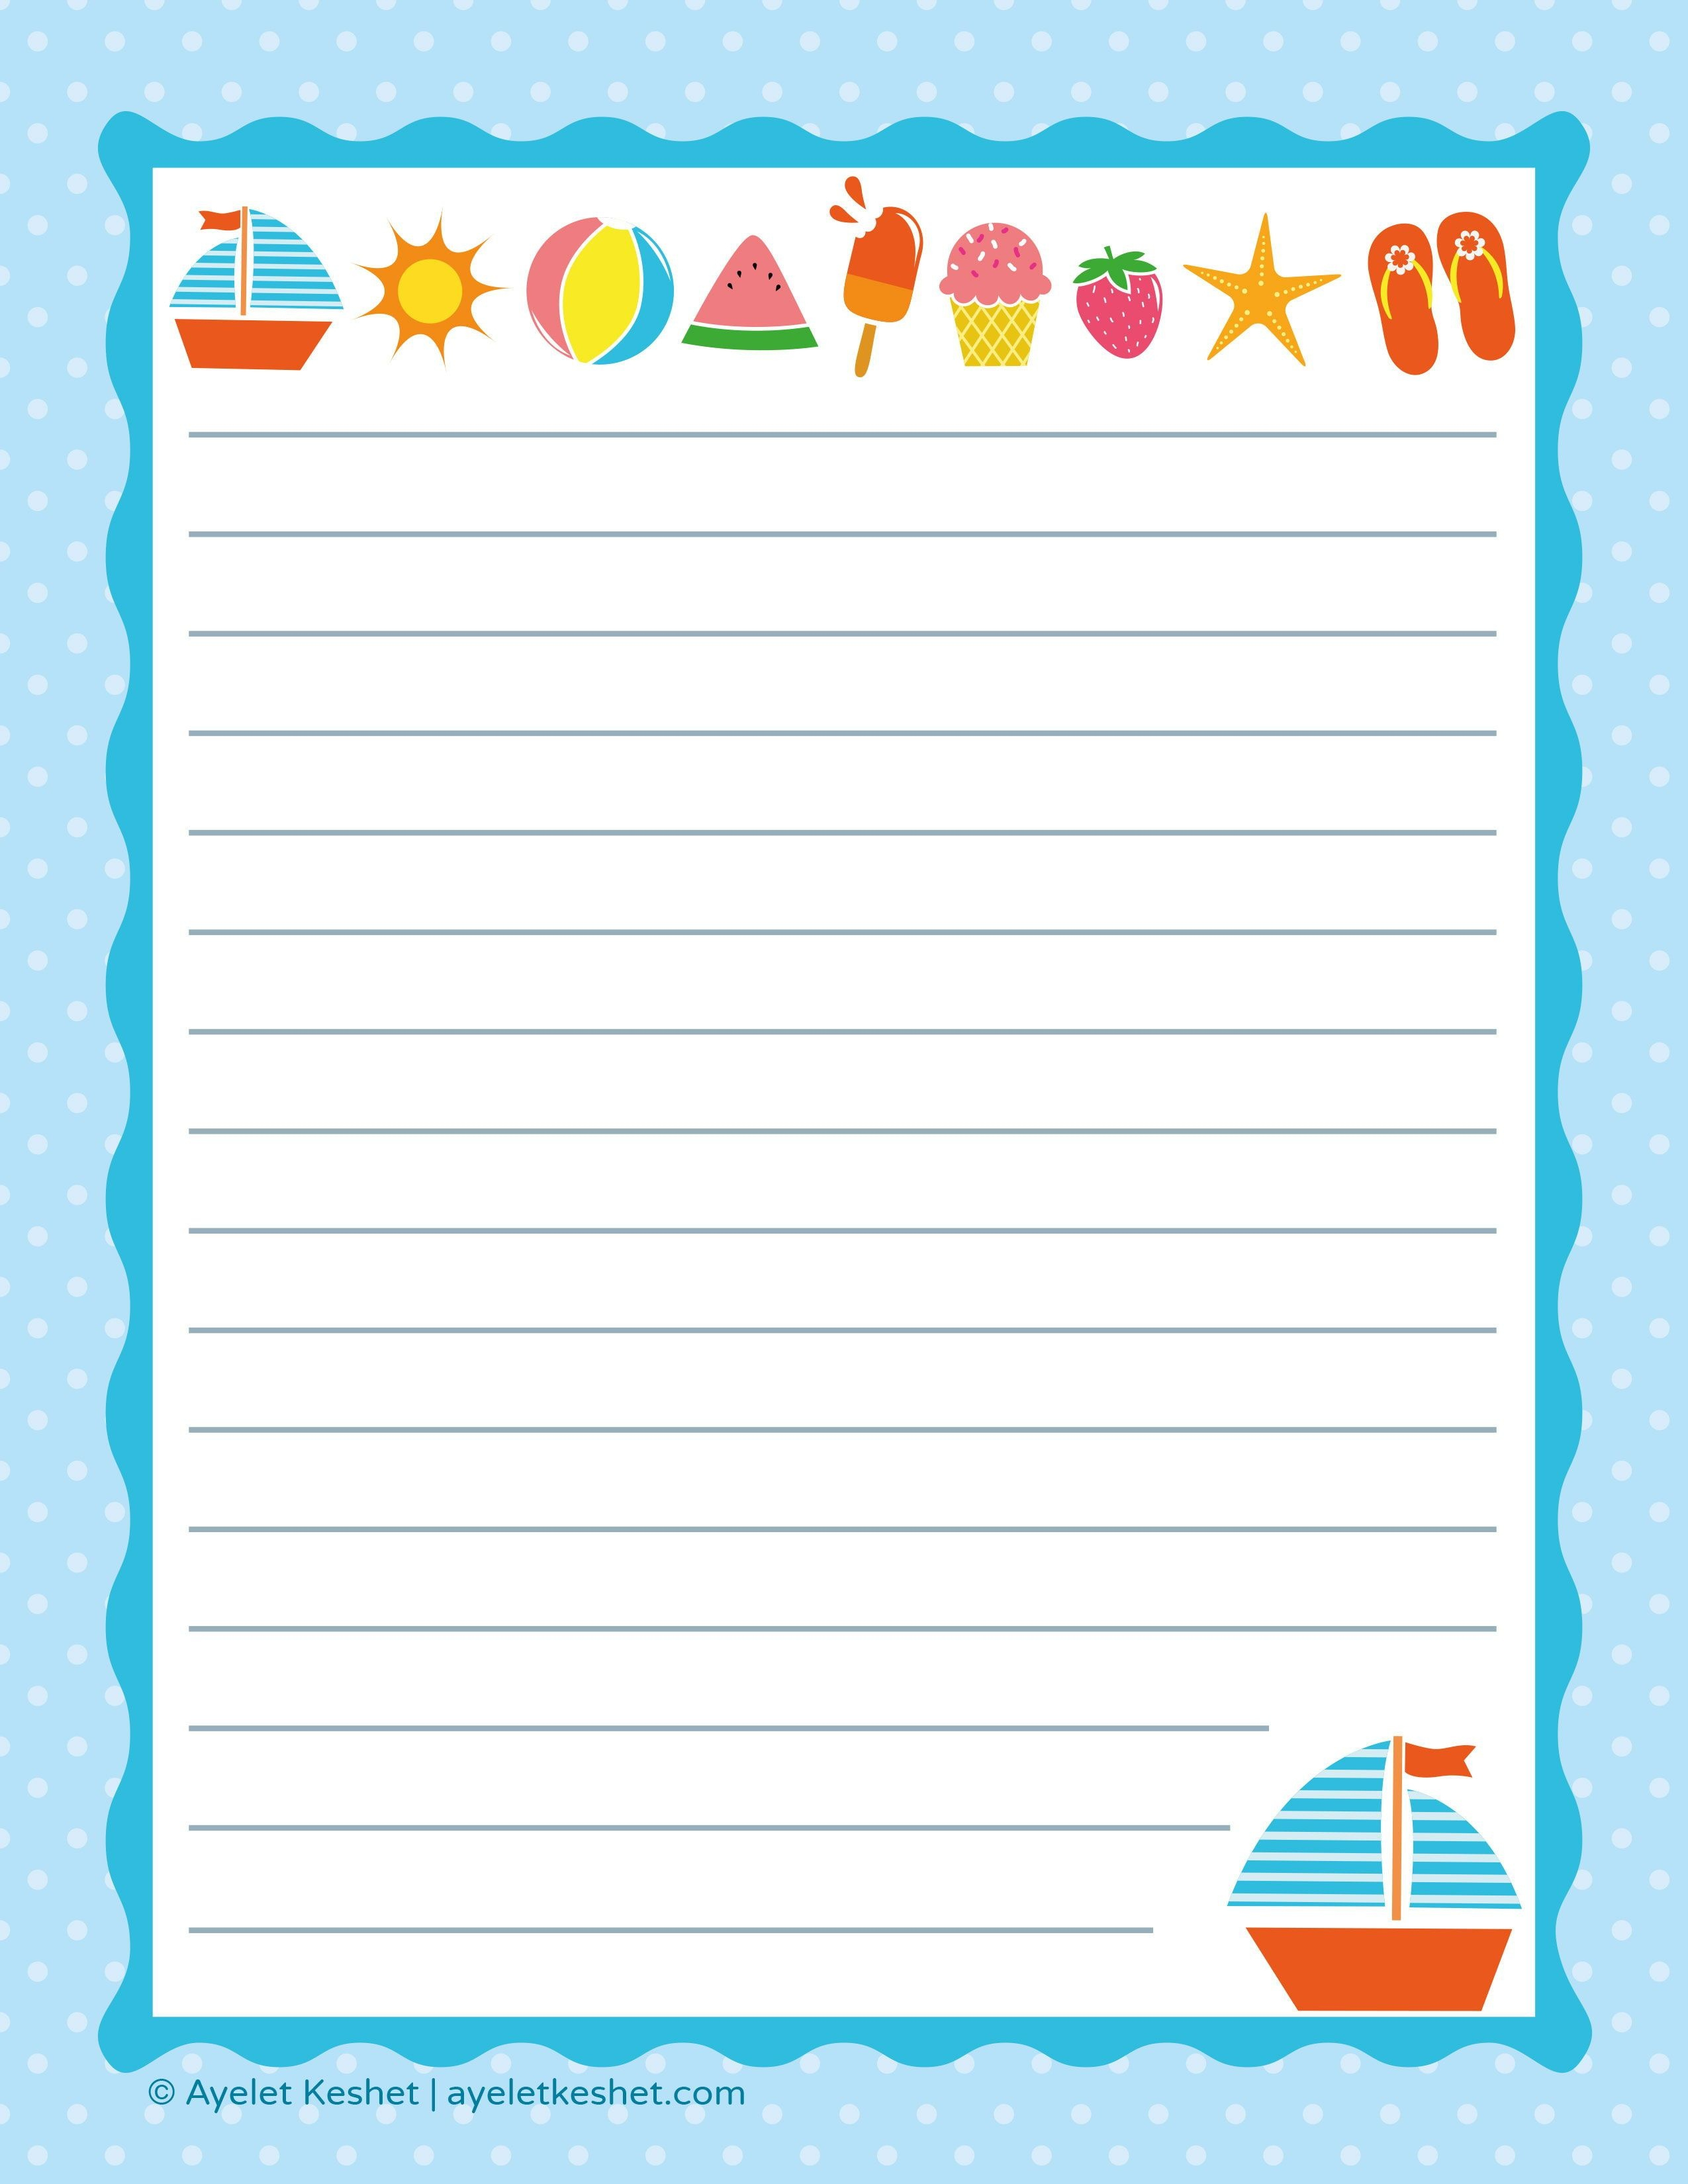 Free Printable Letter Paper   Printables To Go   Printable Letters - Free Printable Stationery Paper